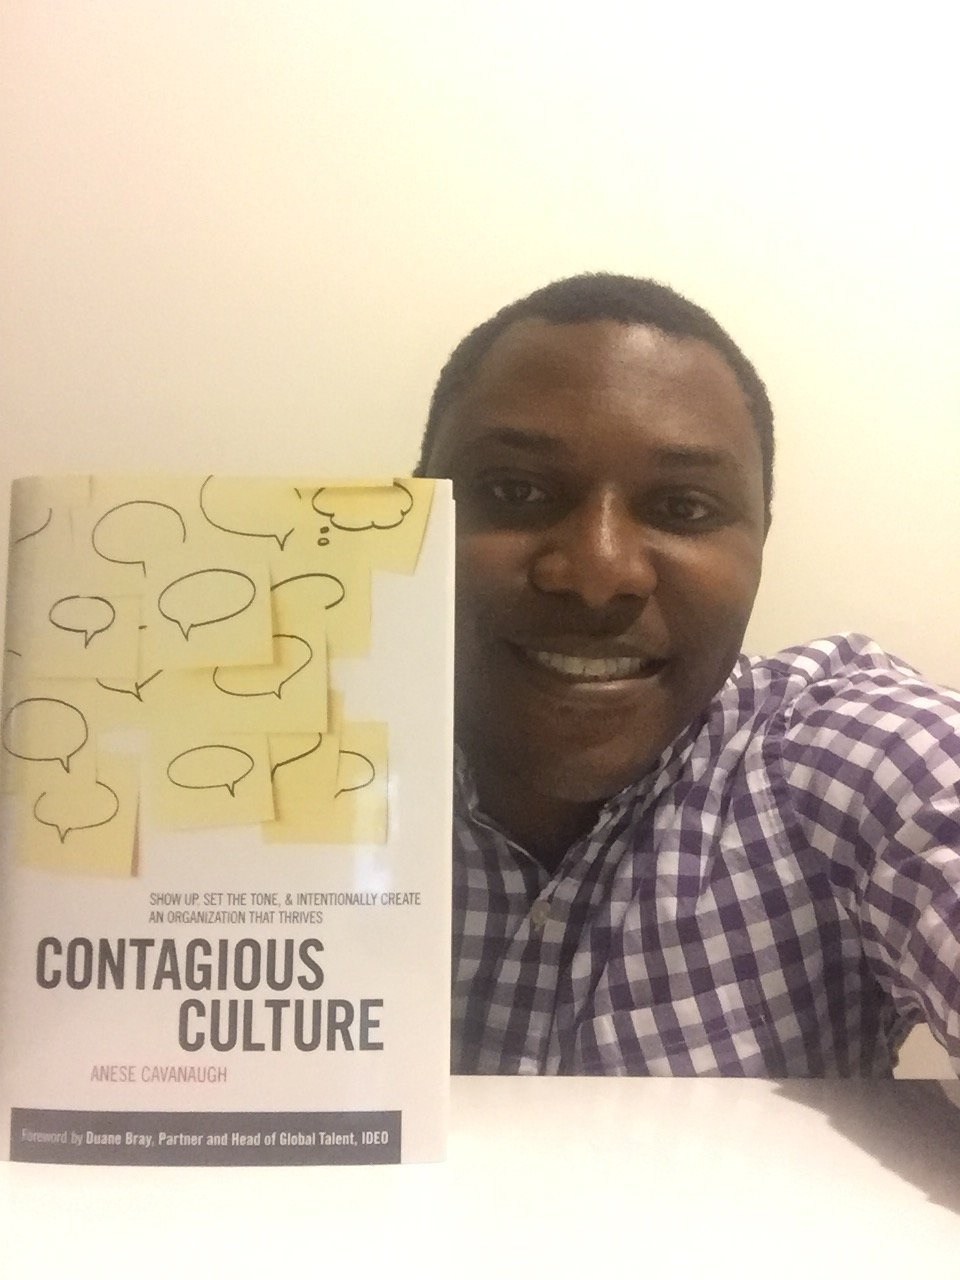 Mikhail_Bell_and_Contagious_Culture_by_Anese_Cavanaugh_1.jpg